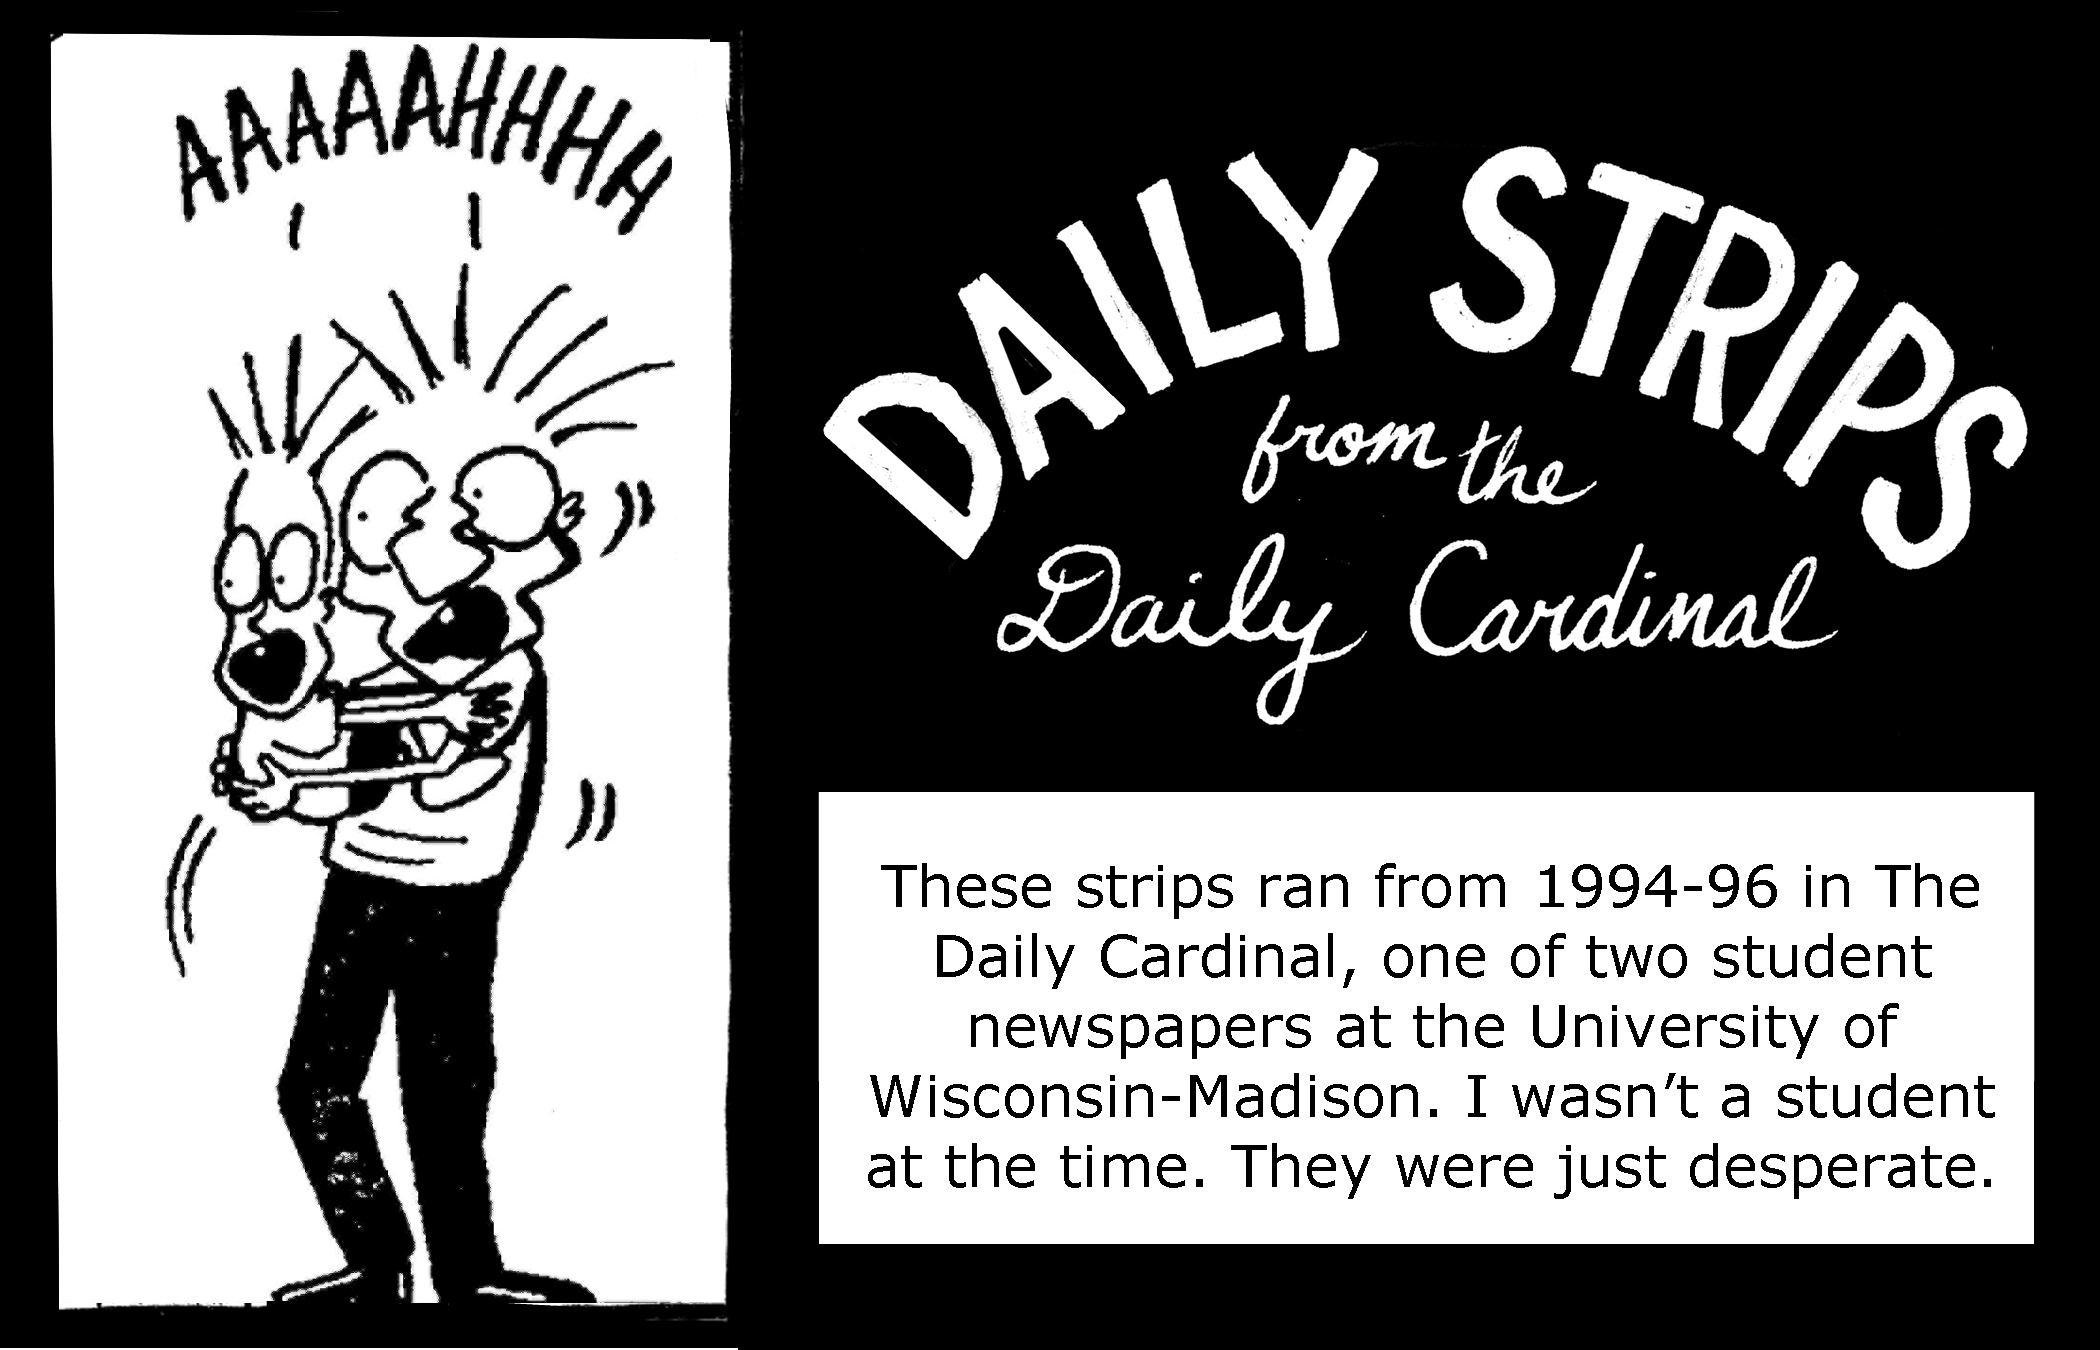 Daily Strips